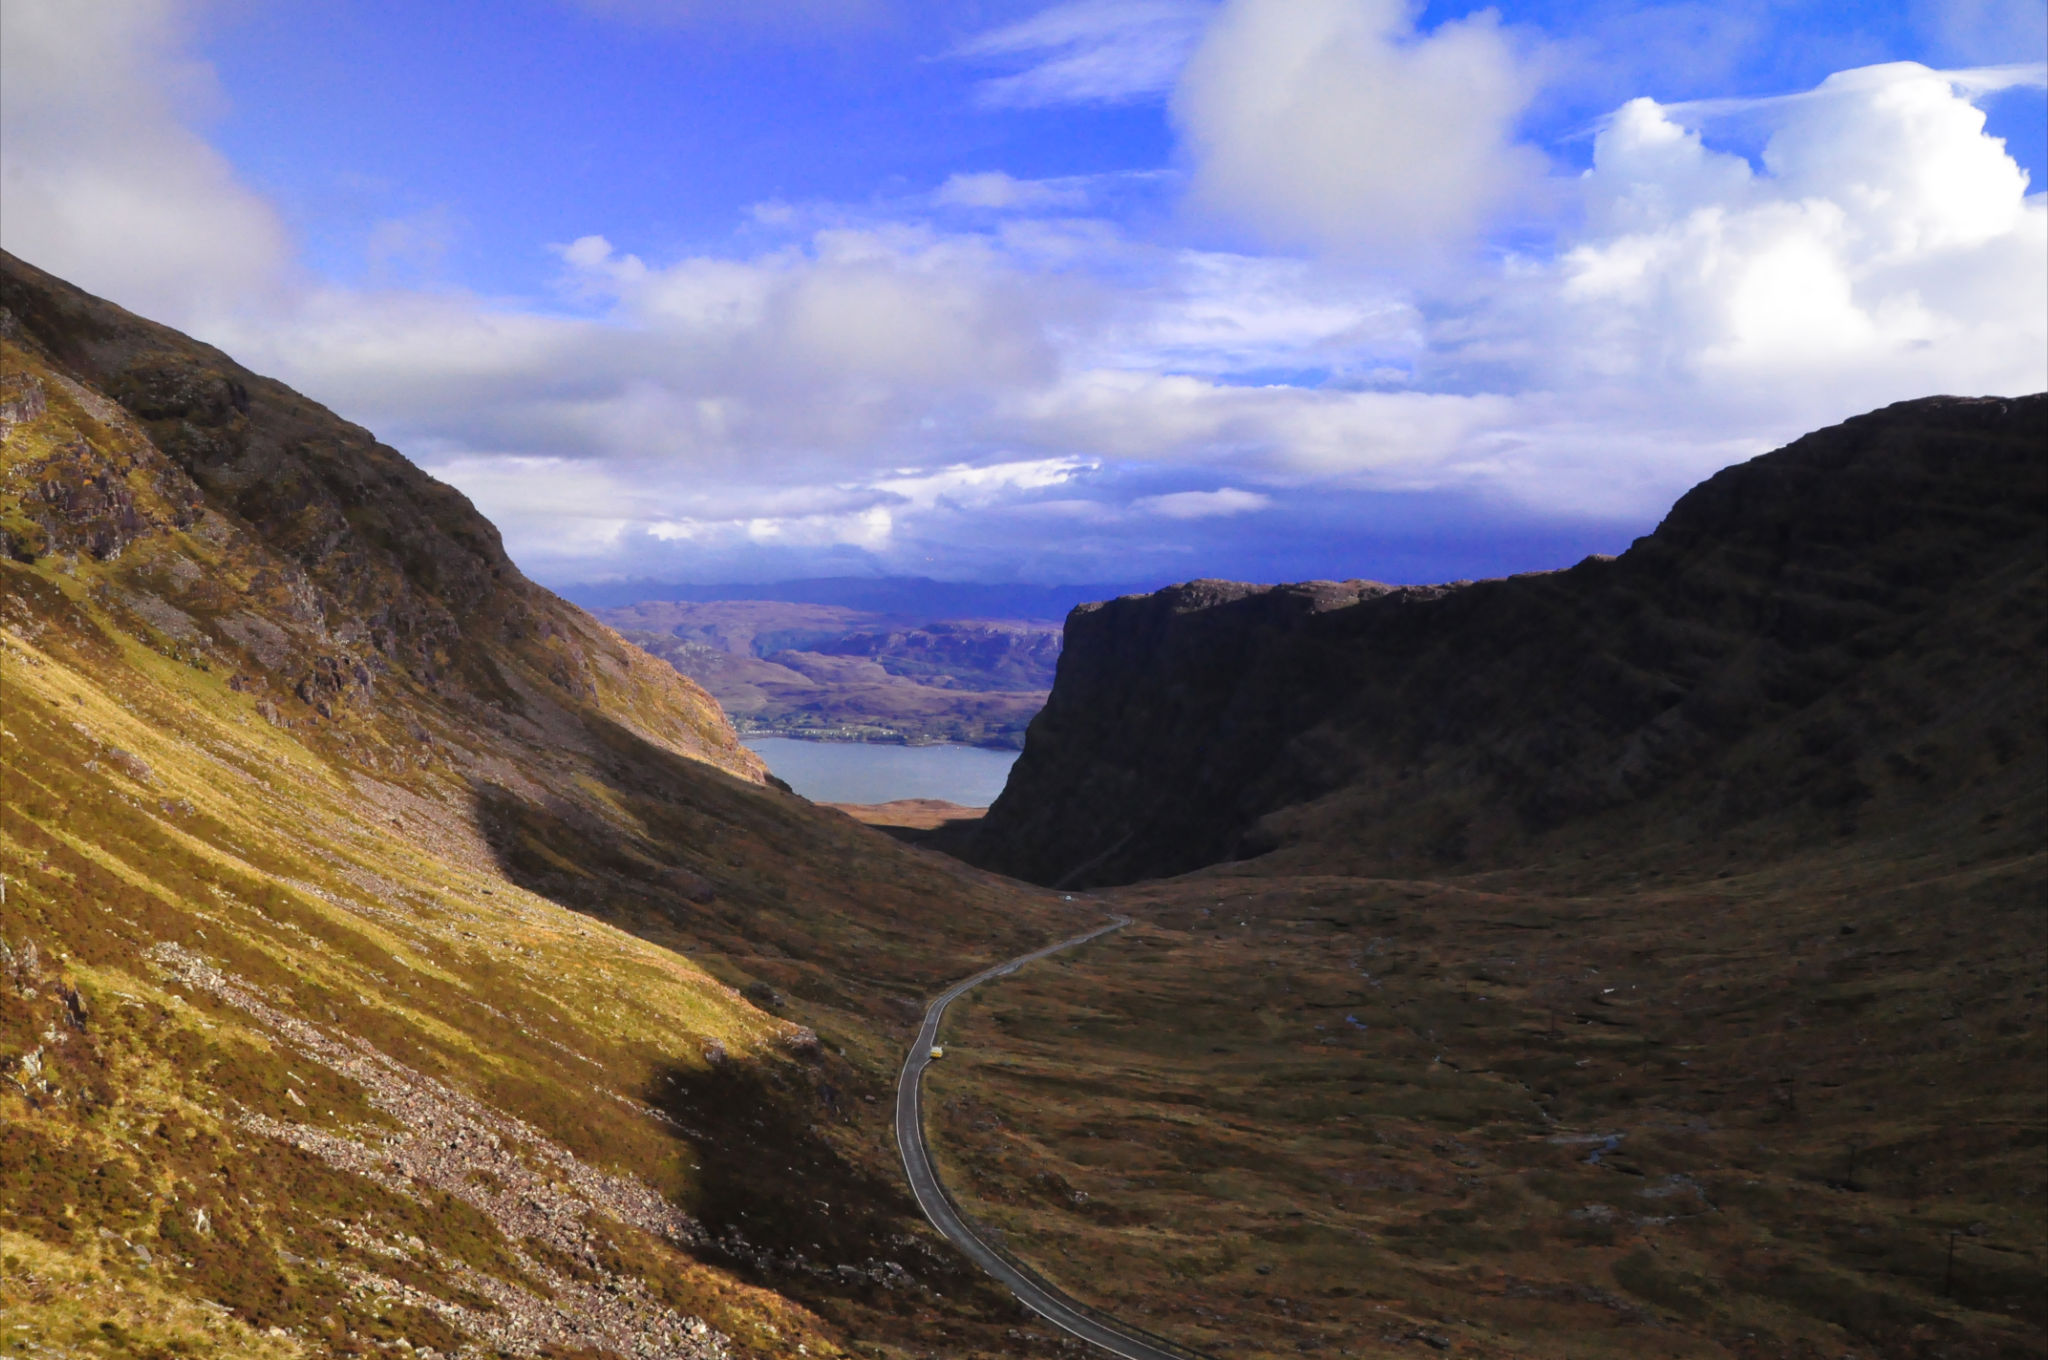 Bealach Na Ba (Pass of the Cattle)